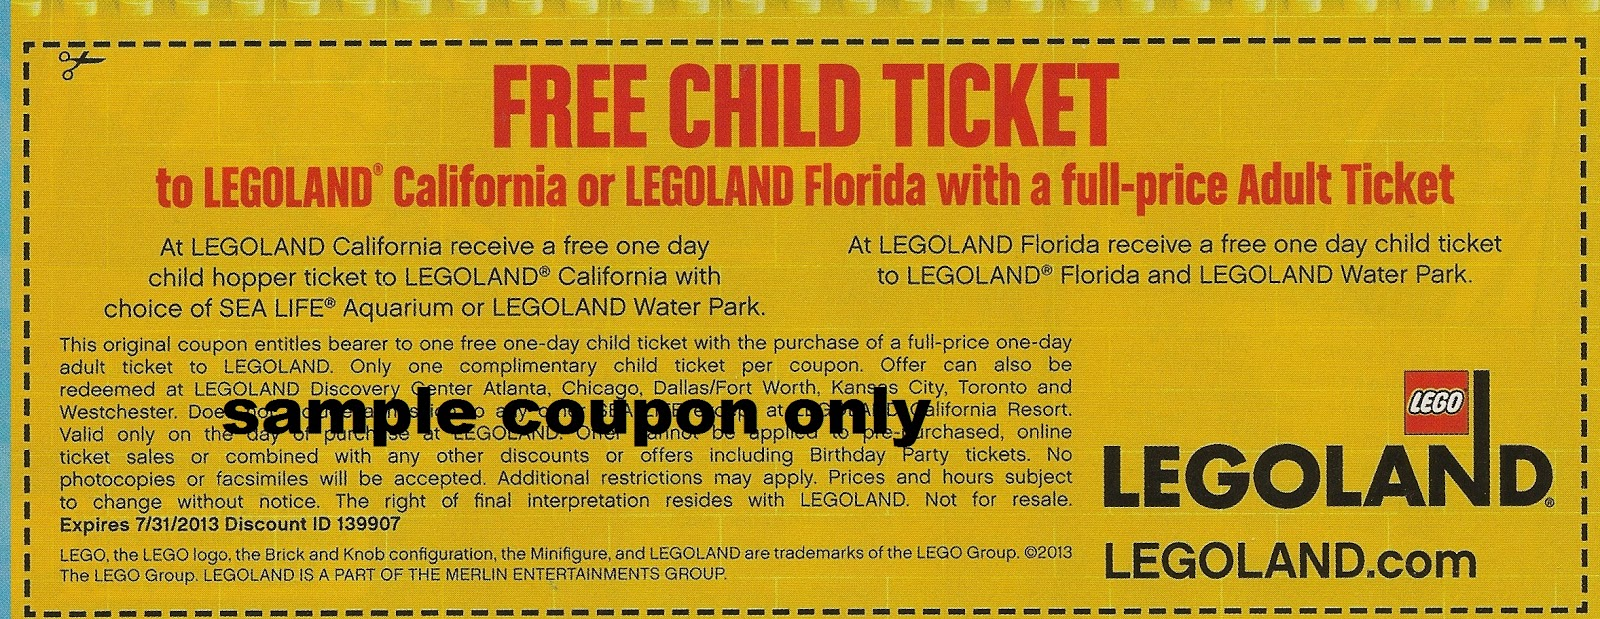 mcdonalds legoland coupon code